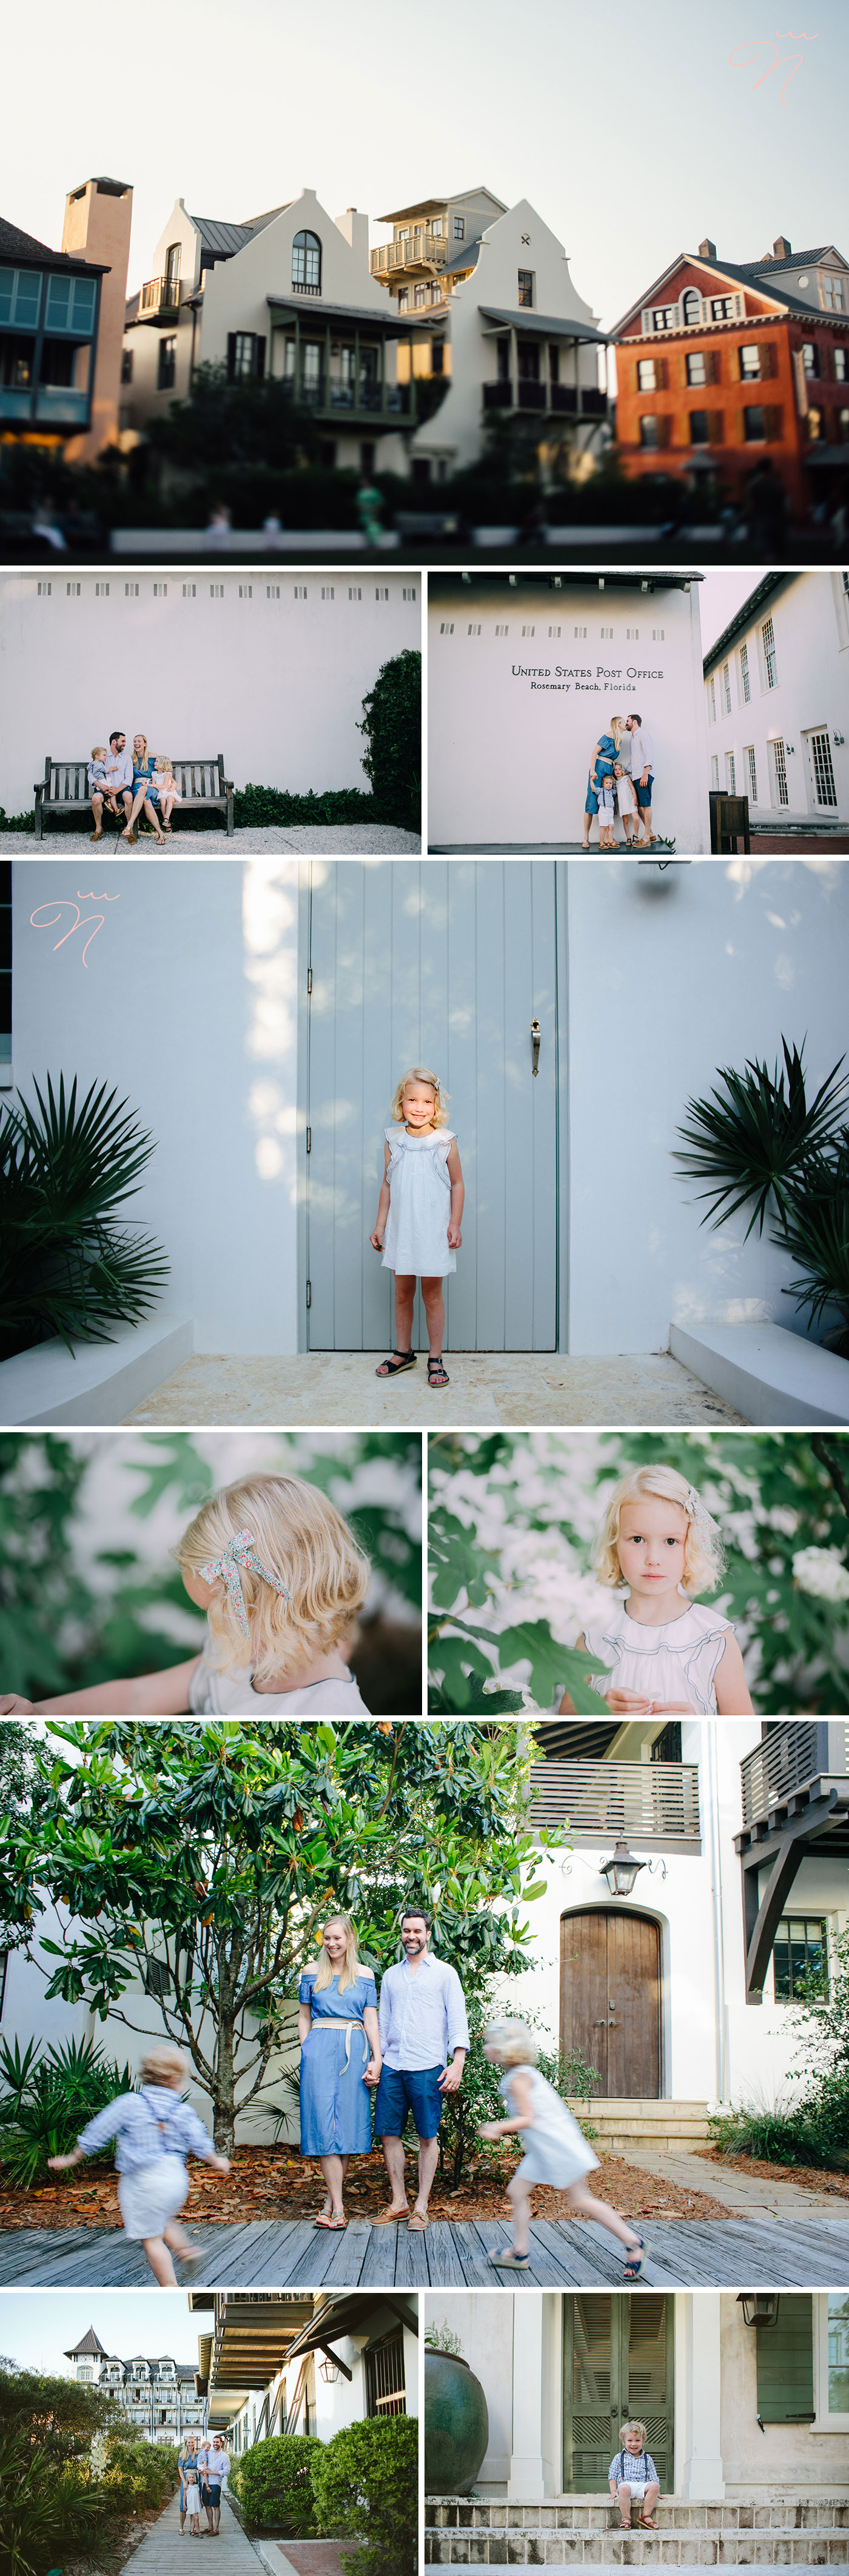 Rosemary Beach Family Photography